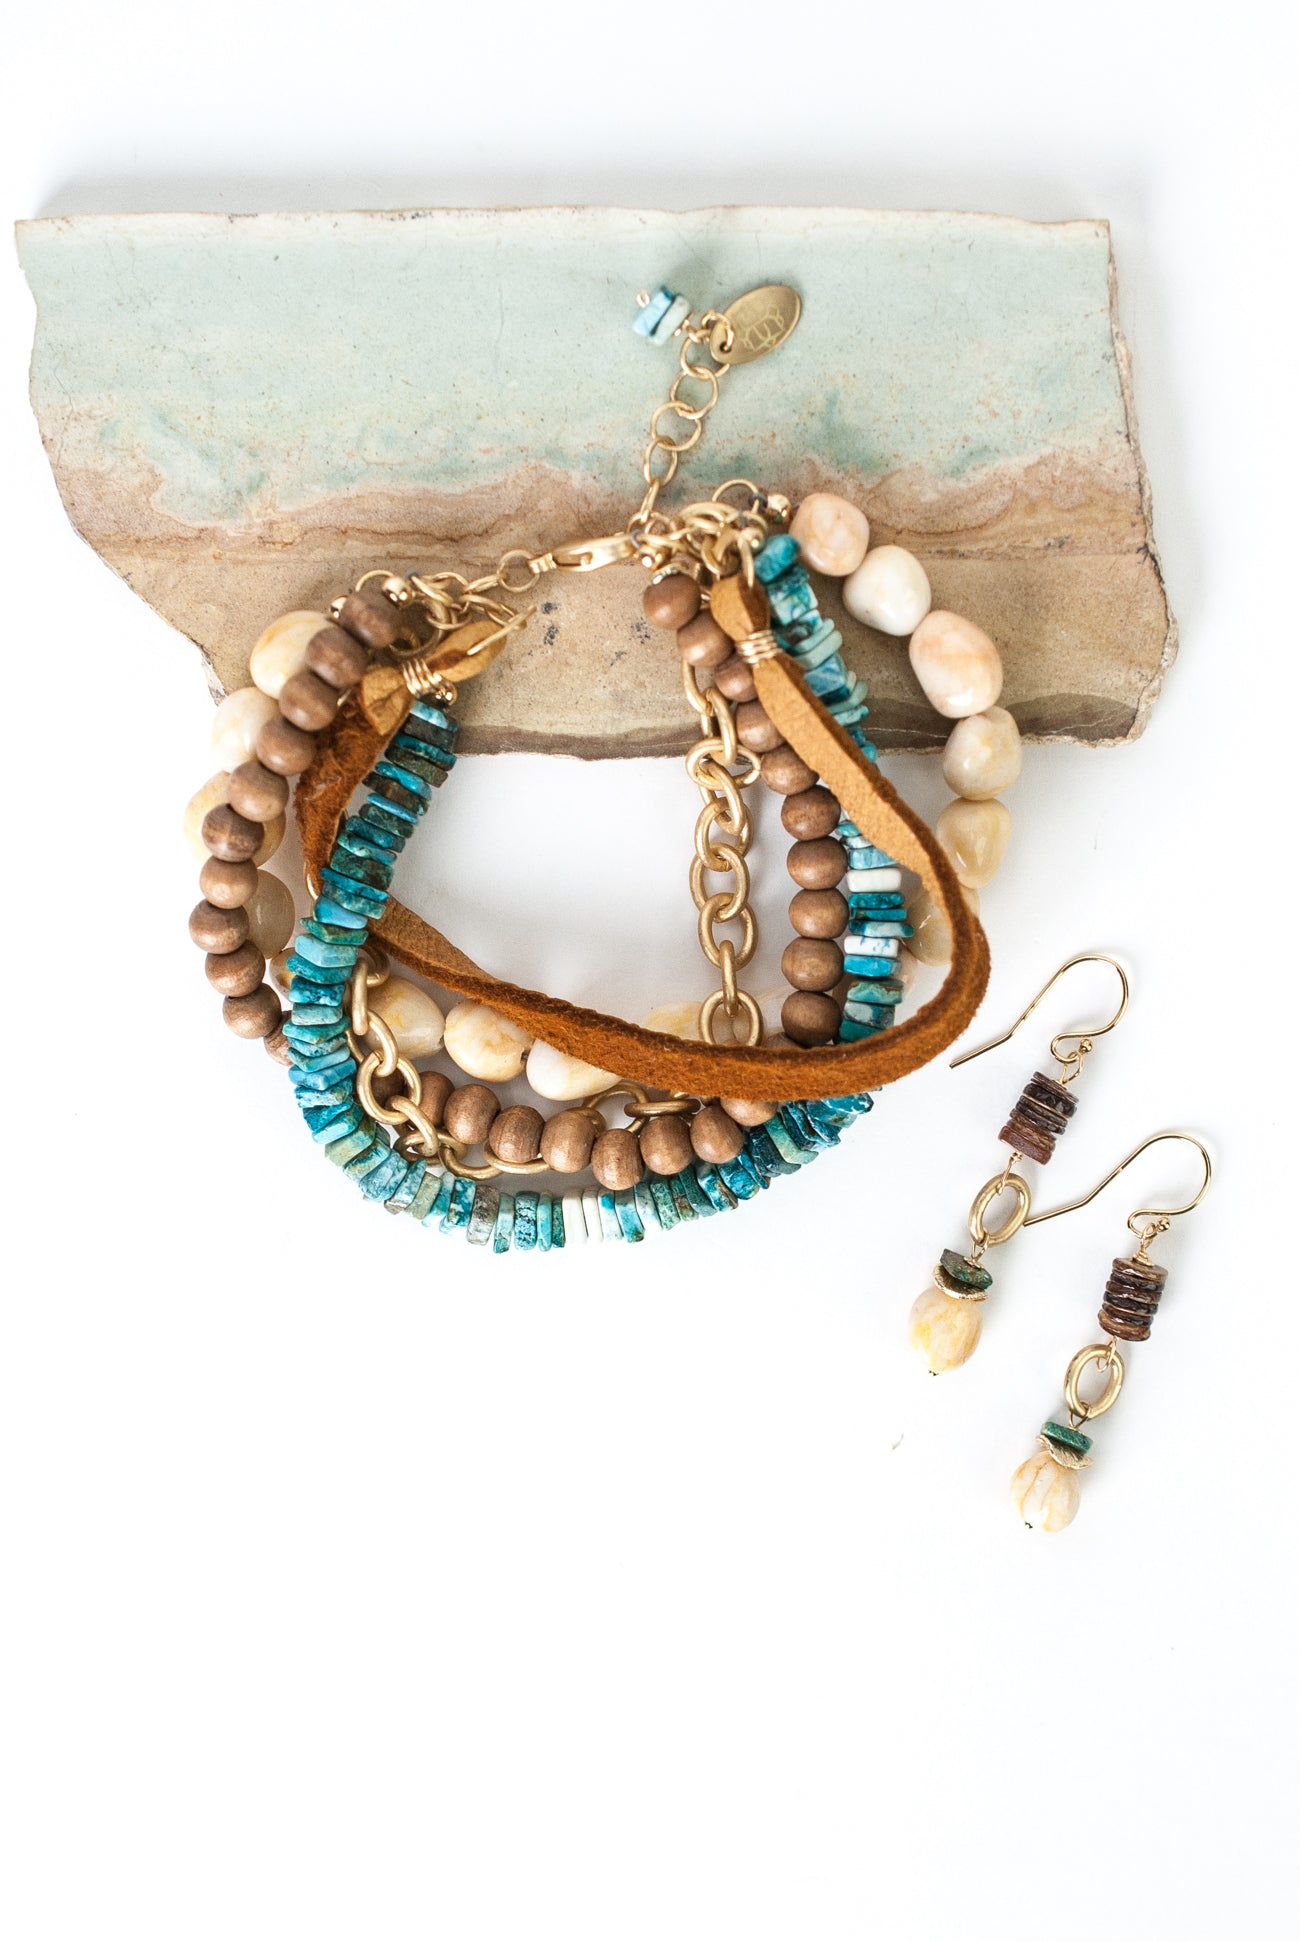 One of a Kind Turquoise, River Pebbles, Wood, Leather Bracelet and Earrings Set